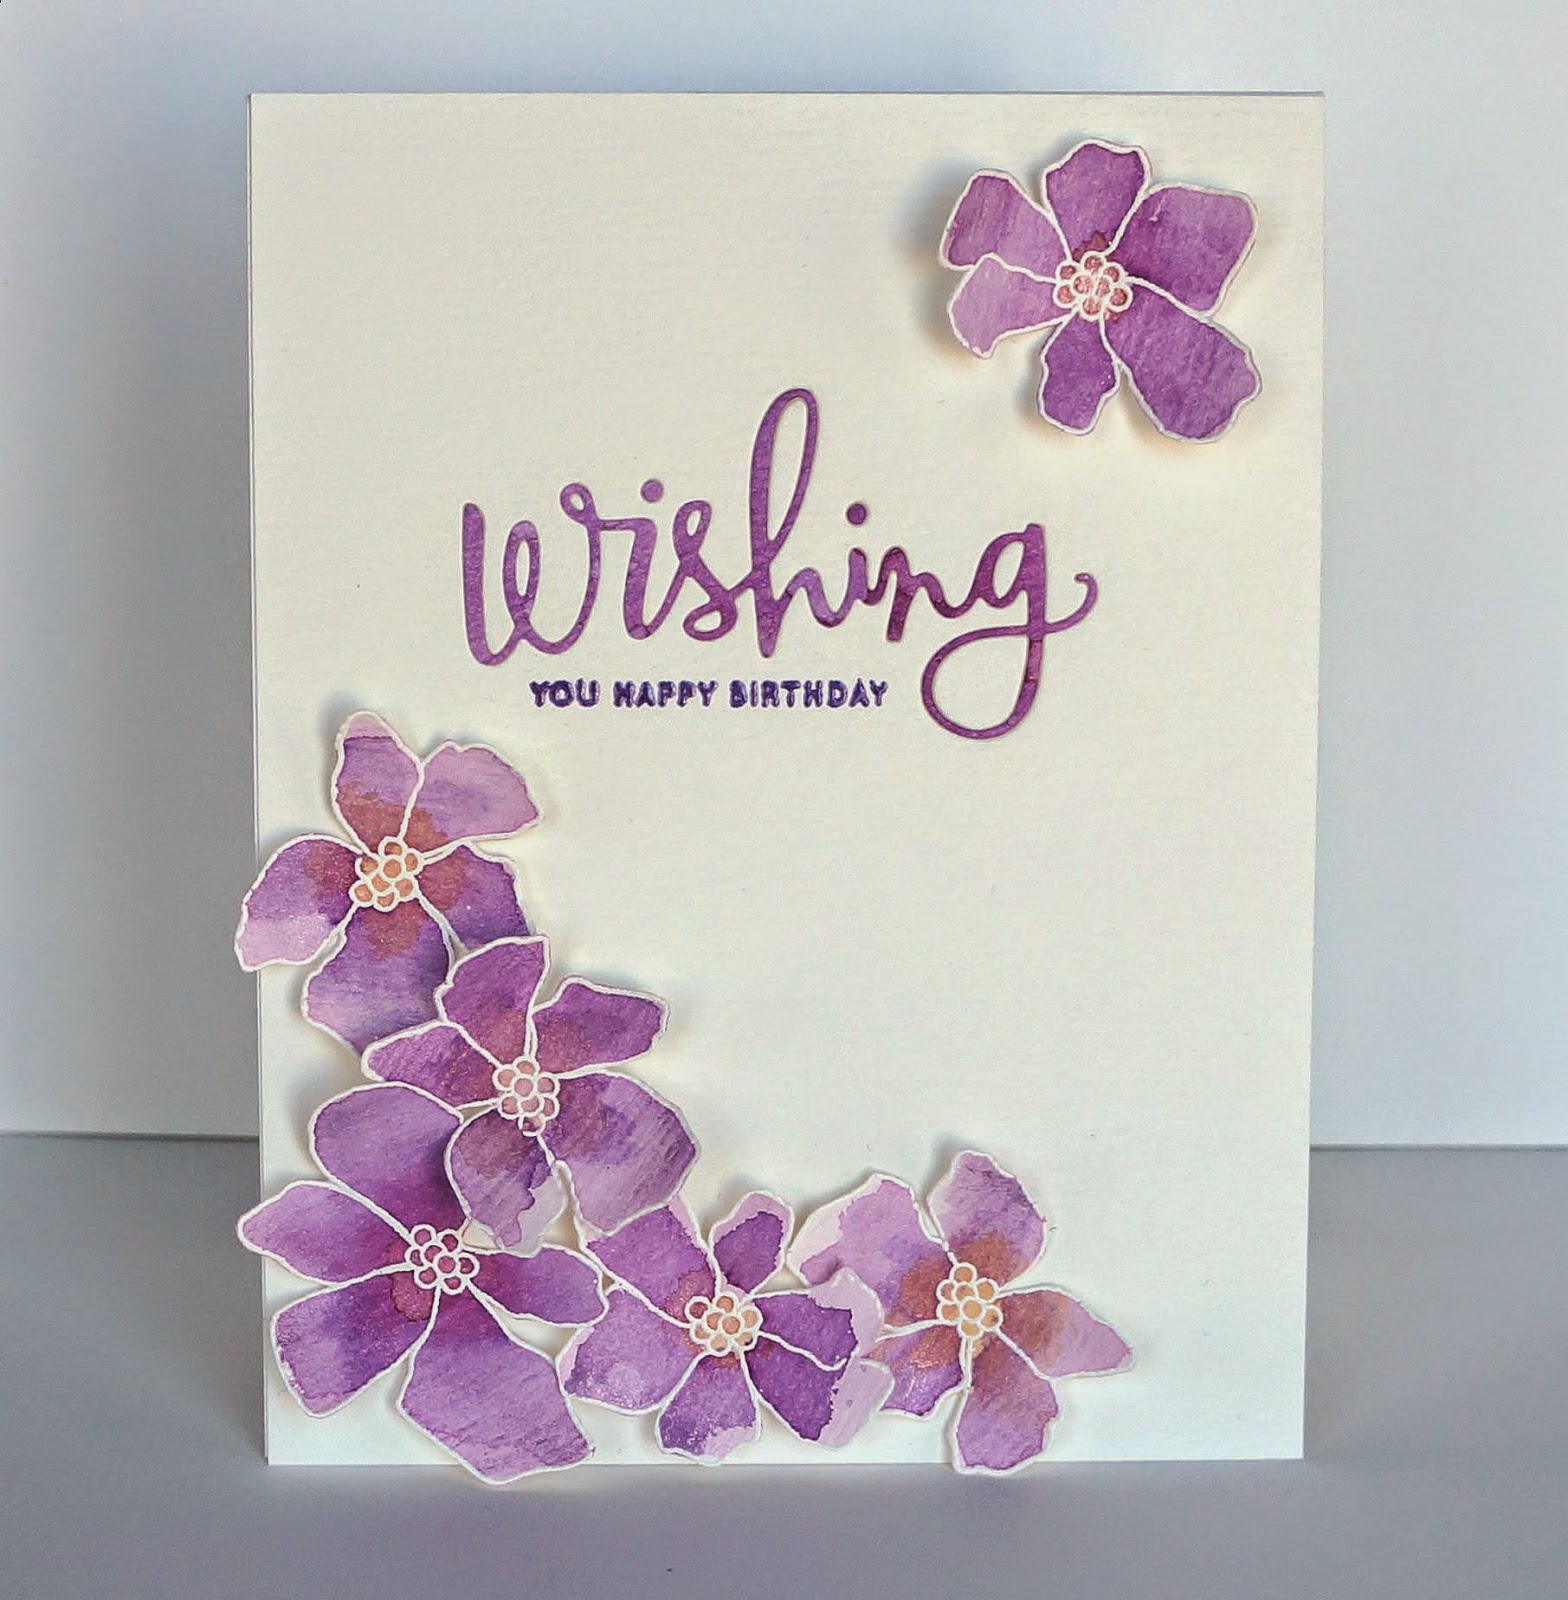 10 Beautiful and Impressive Birthday Cards to Send to Your Beloved Wife 4